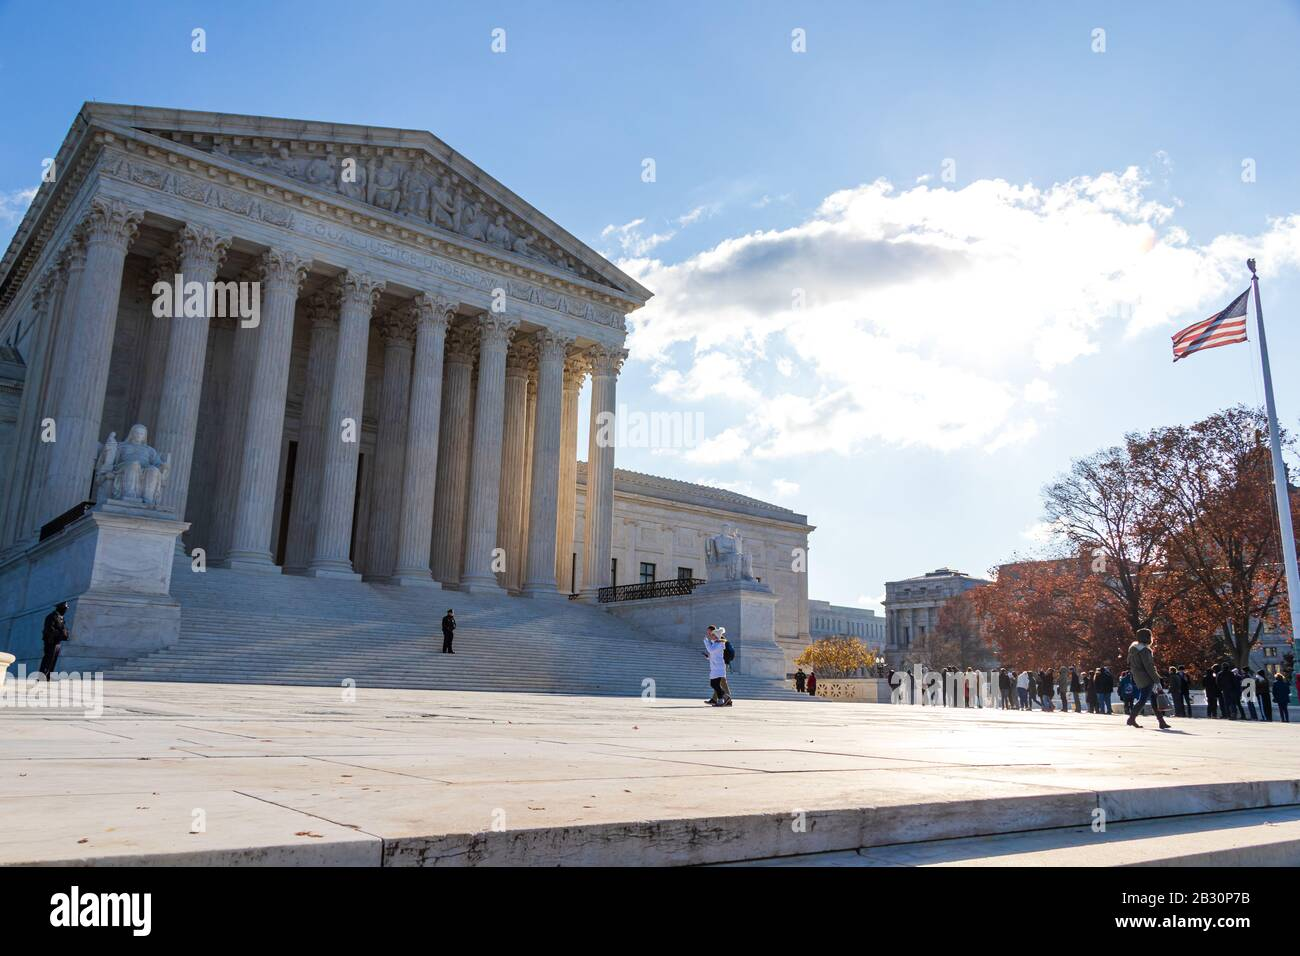 United States Supreme Court on sunny day in D.C. with the USA flag waving in the sunlight. Stock Photo